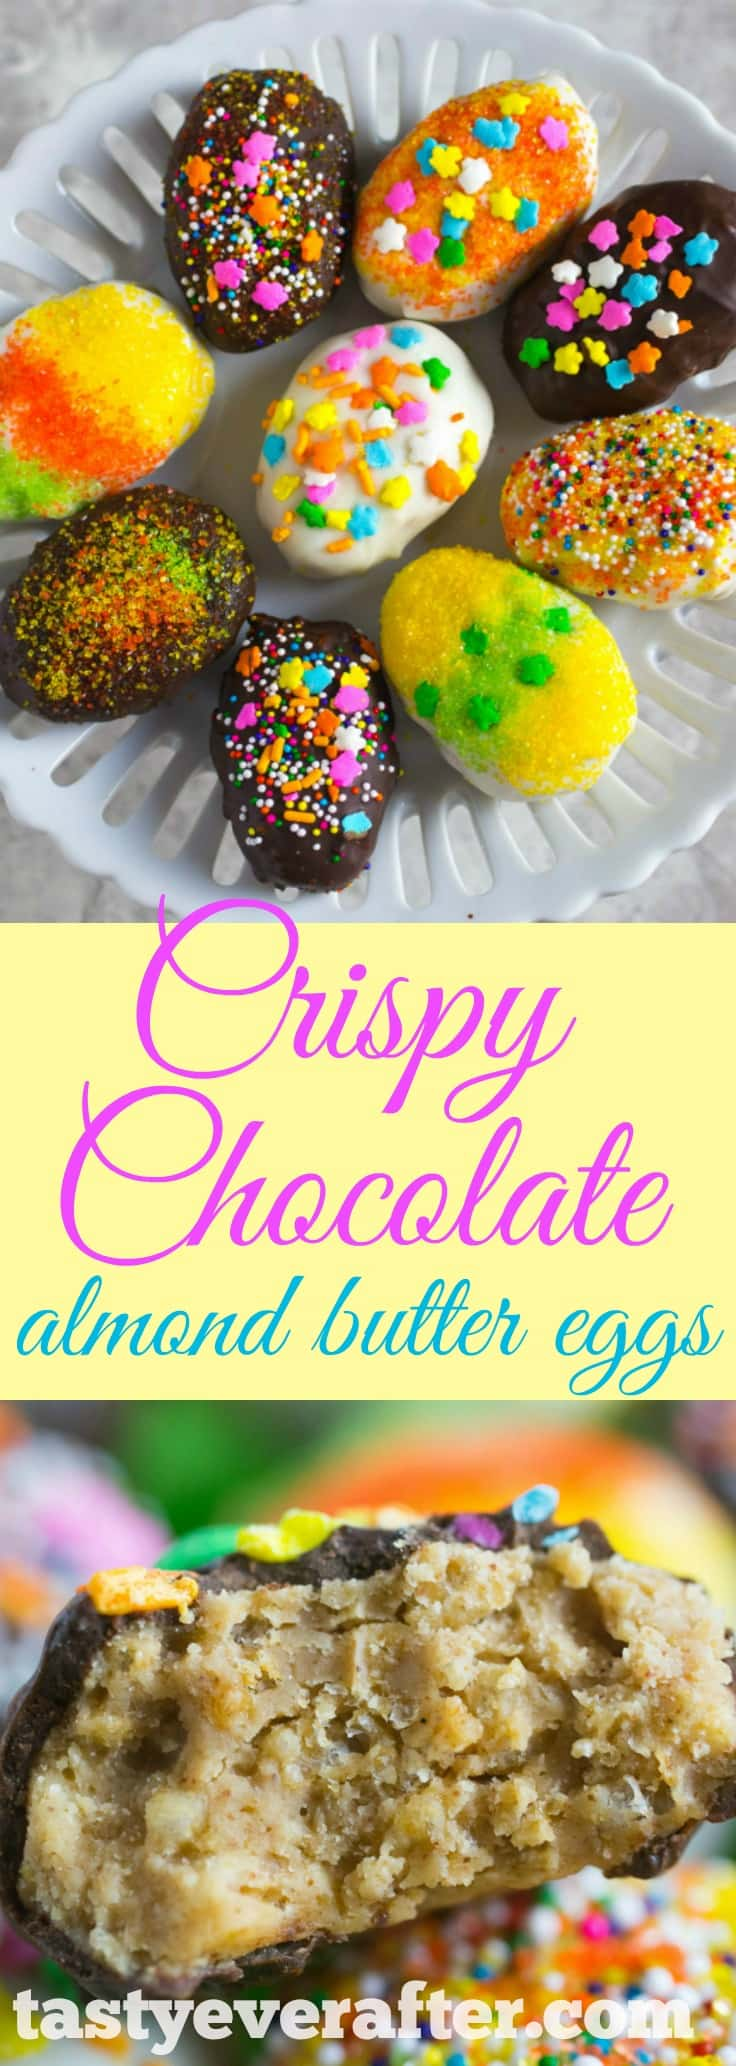 Crispy Chocolate Covered Almond Butter Eggs Recipe